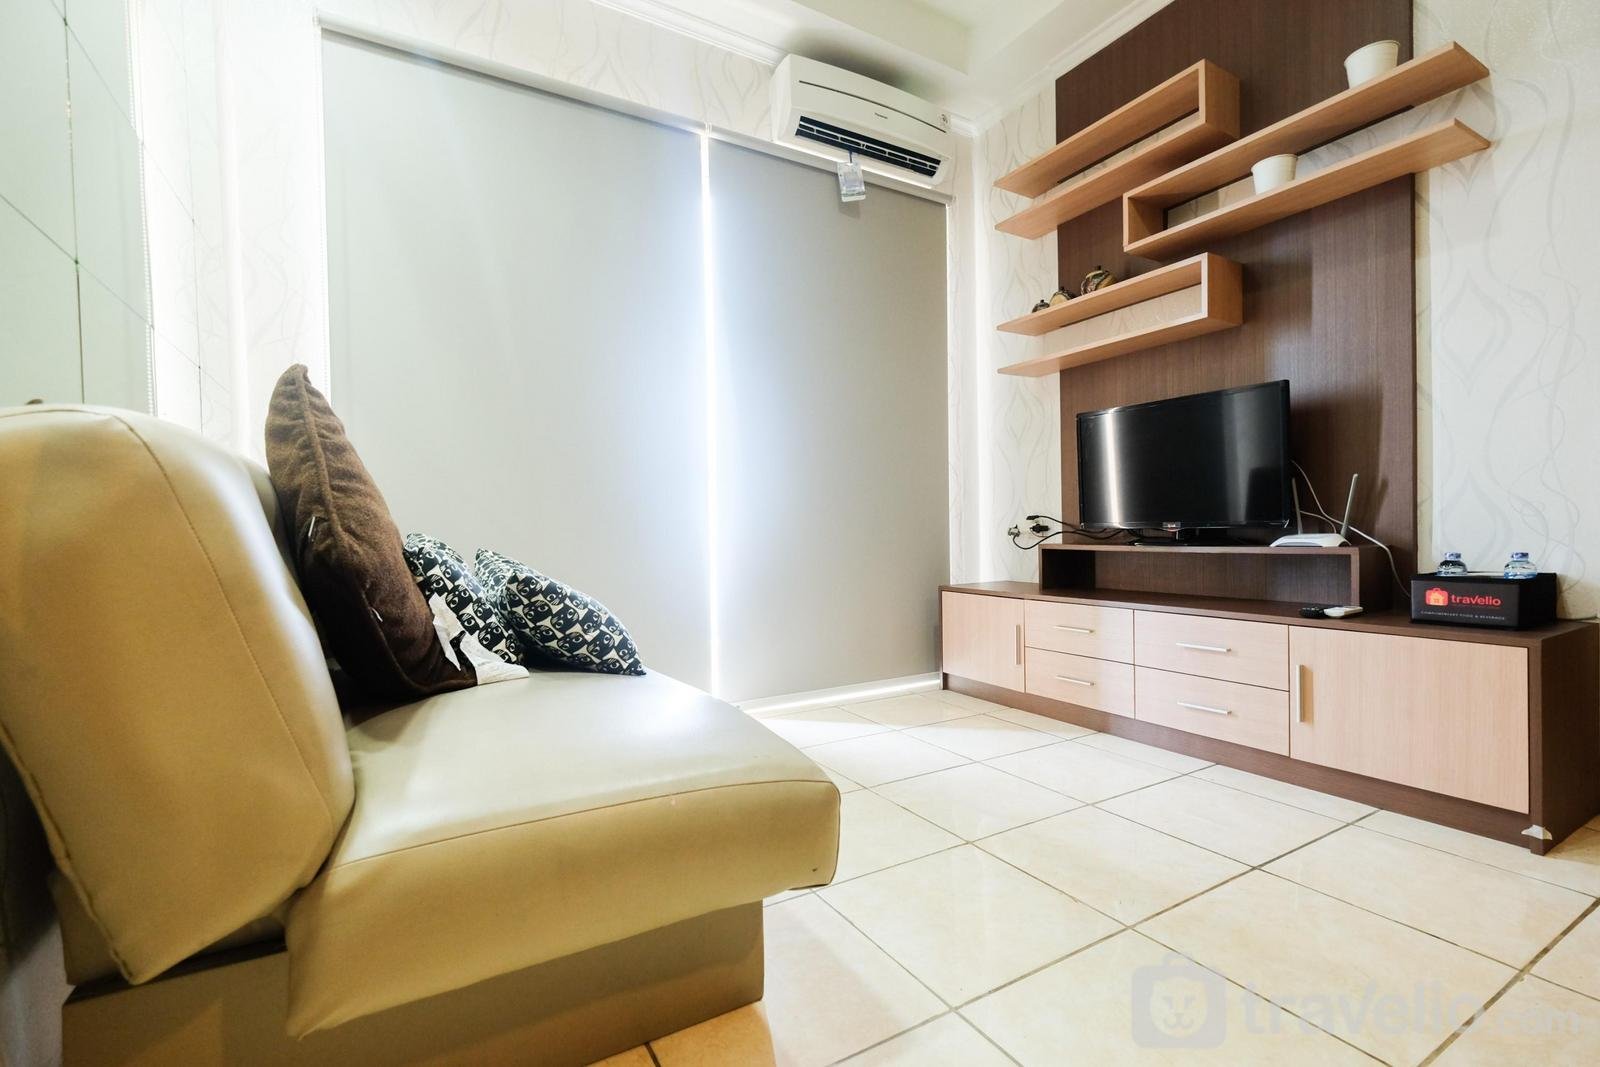 MOI Kelapa Gading - Highest Value 2BR Apartment City Home near MOI By Travelio